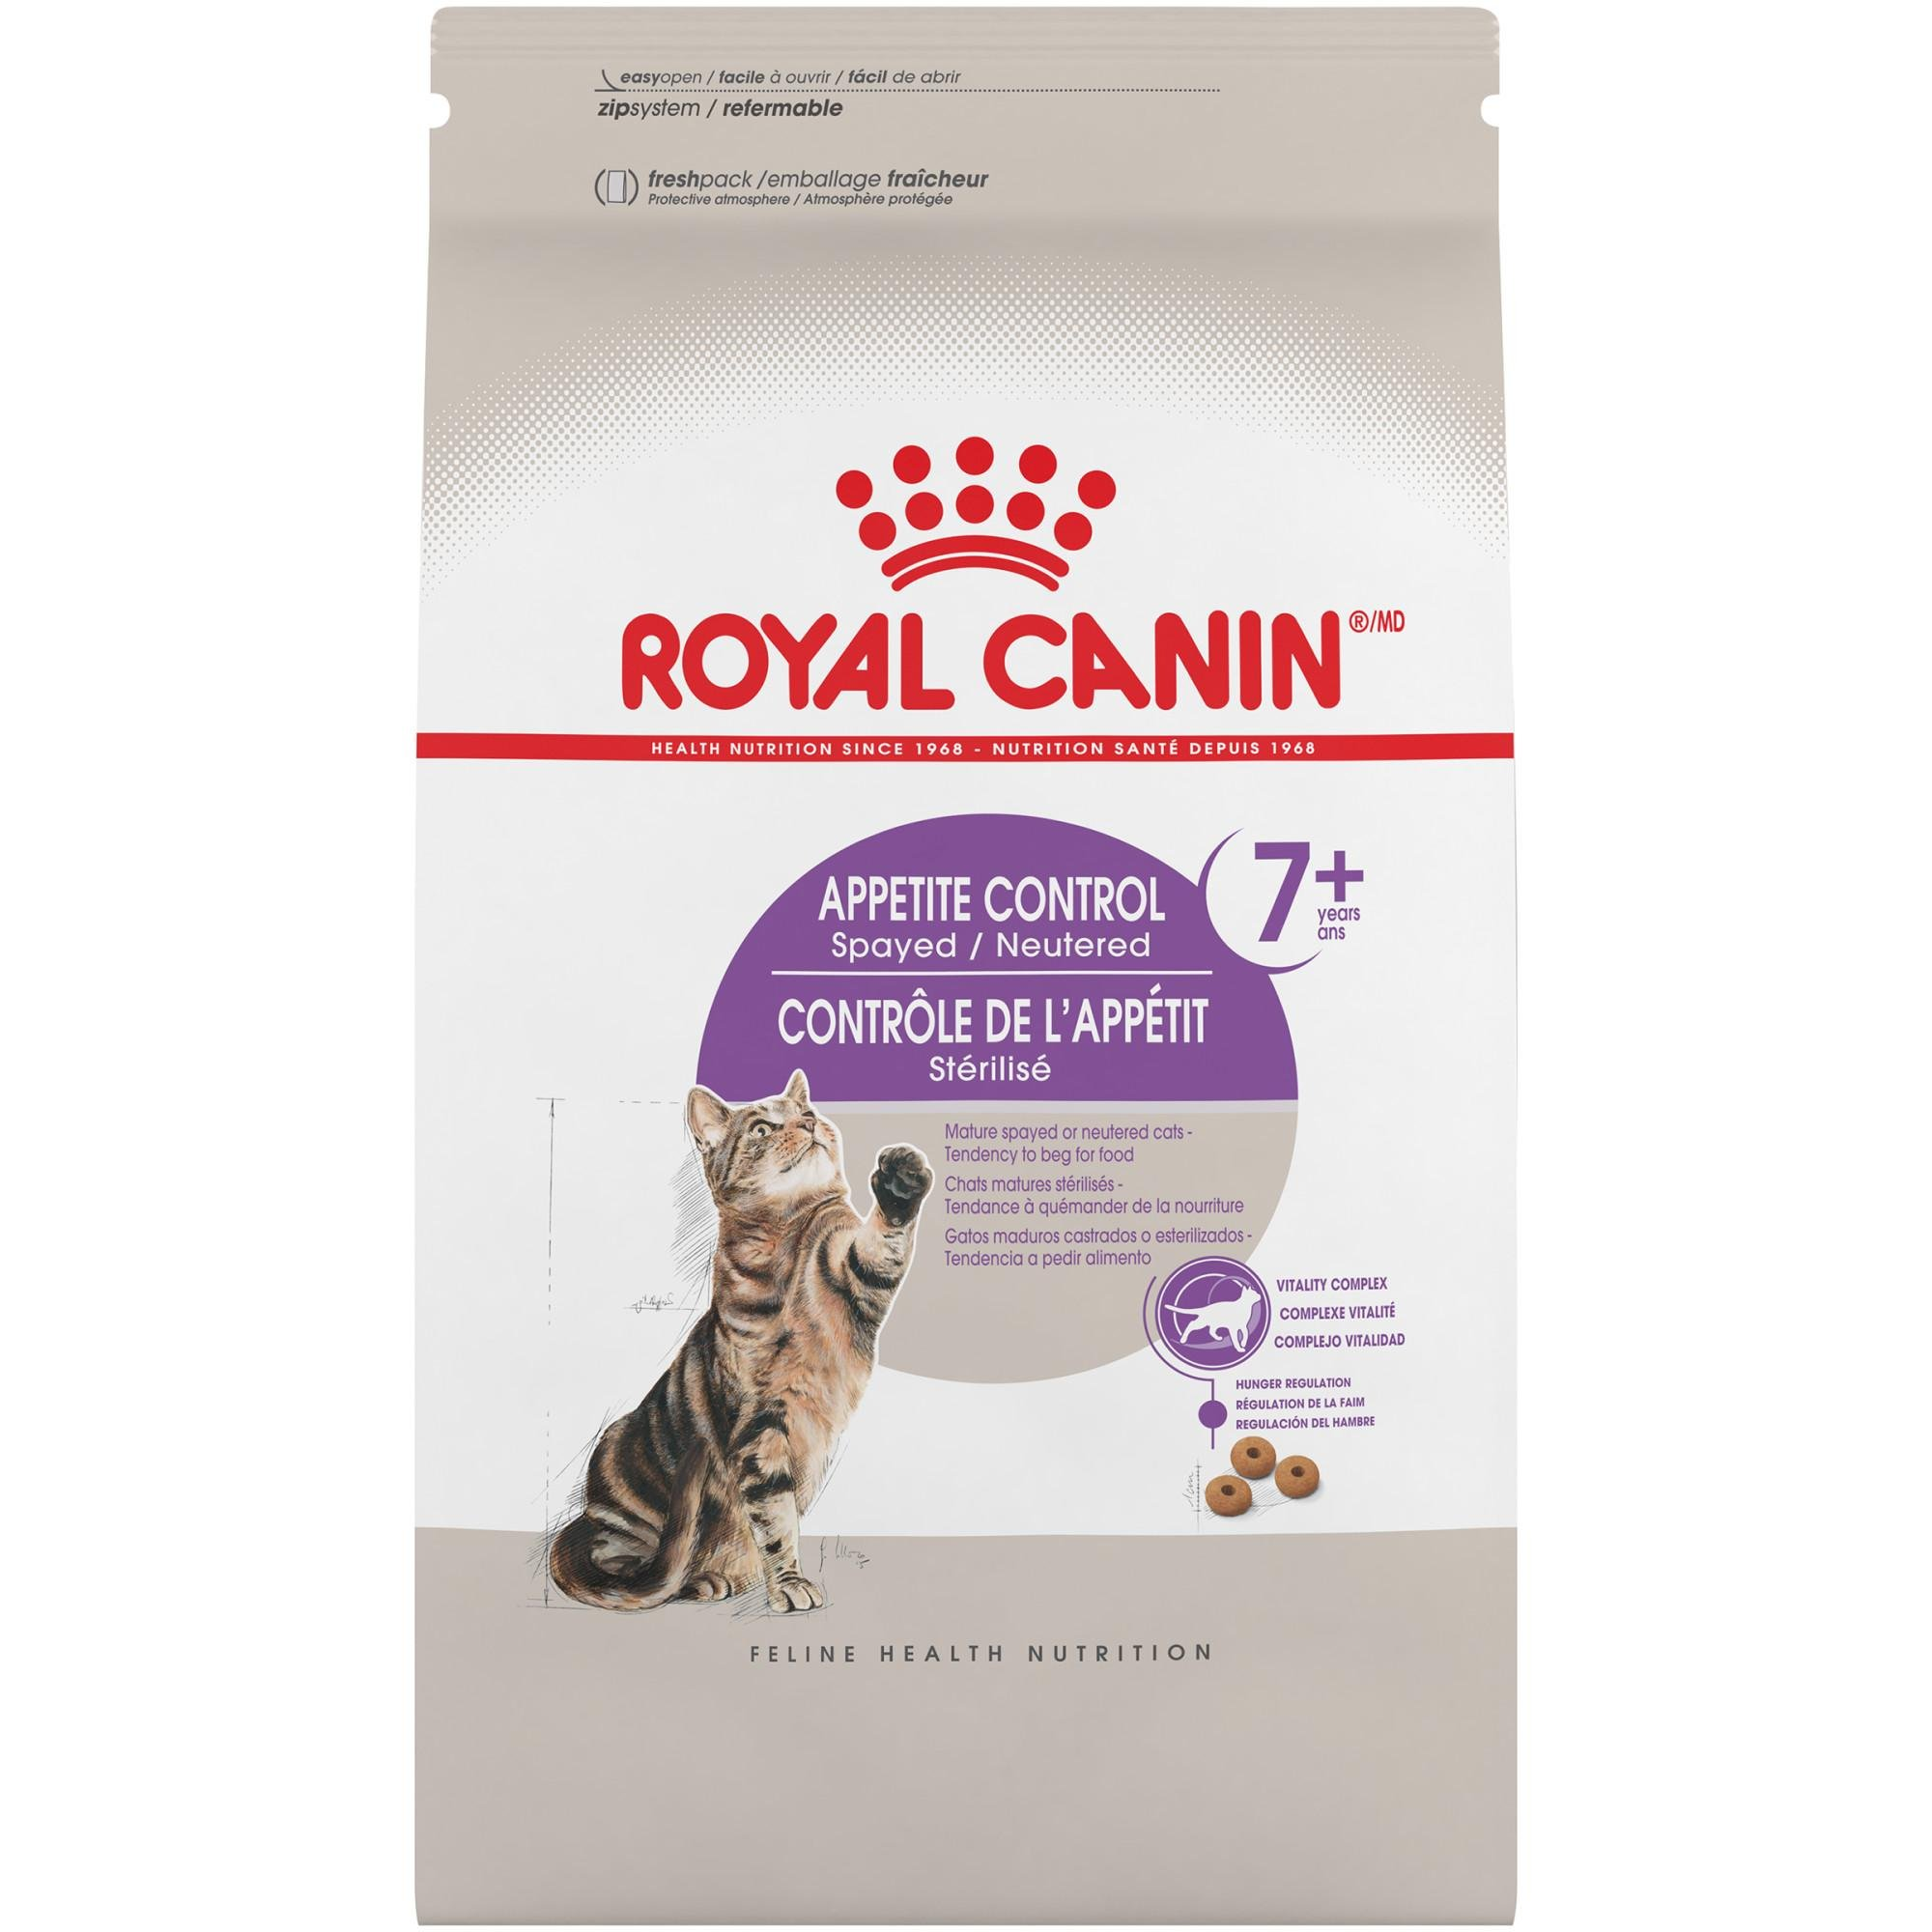 Royal Canin FELINE HEALTH NUTRITION Appetite Control 7+ Spayed Neutered dry adult cat food, 6lb